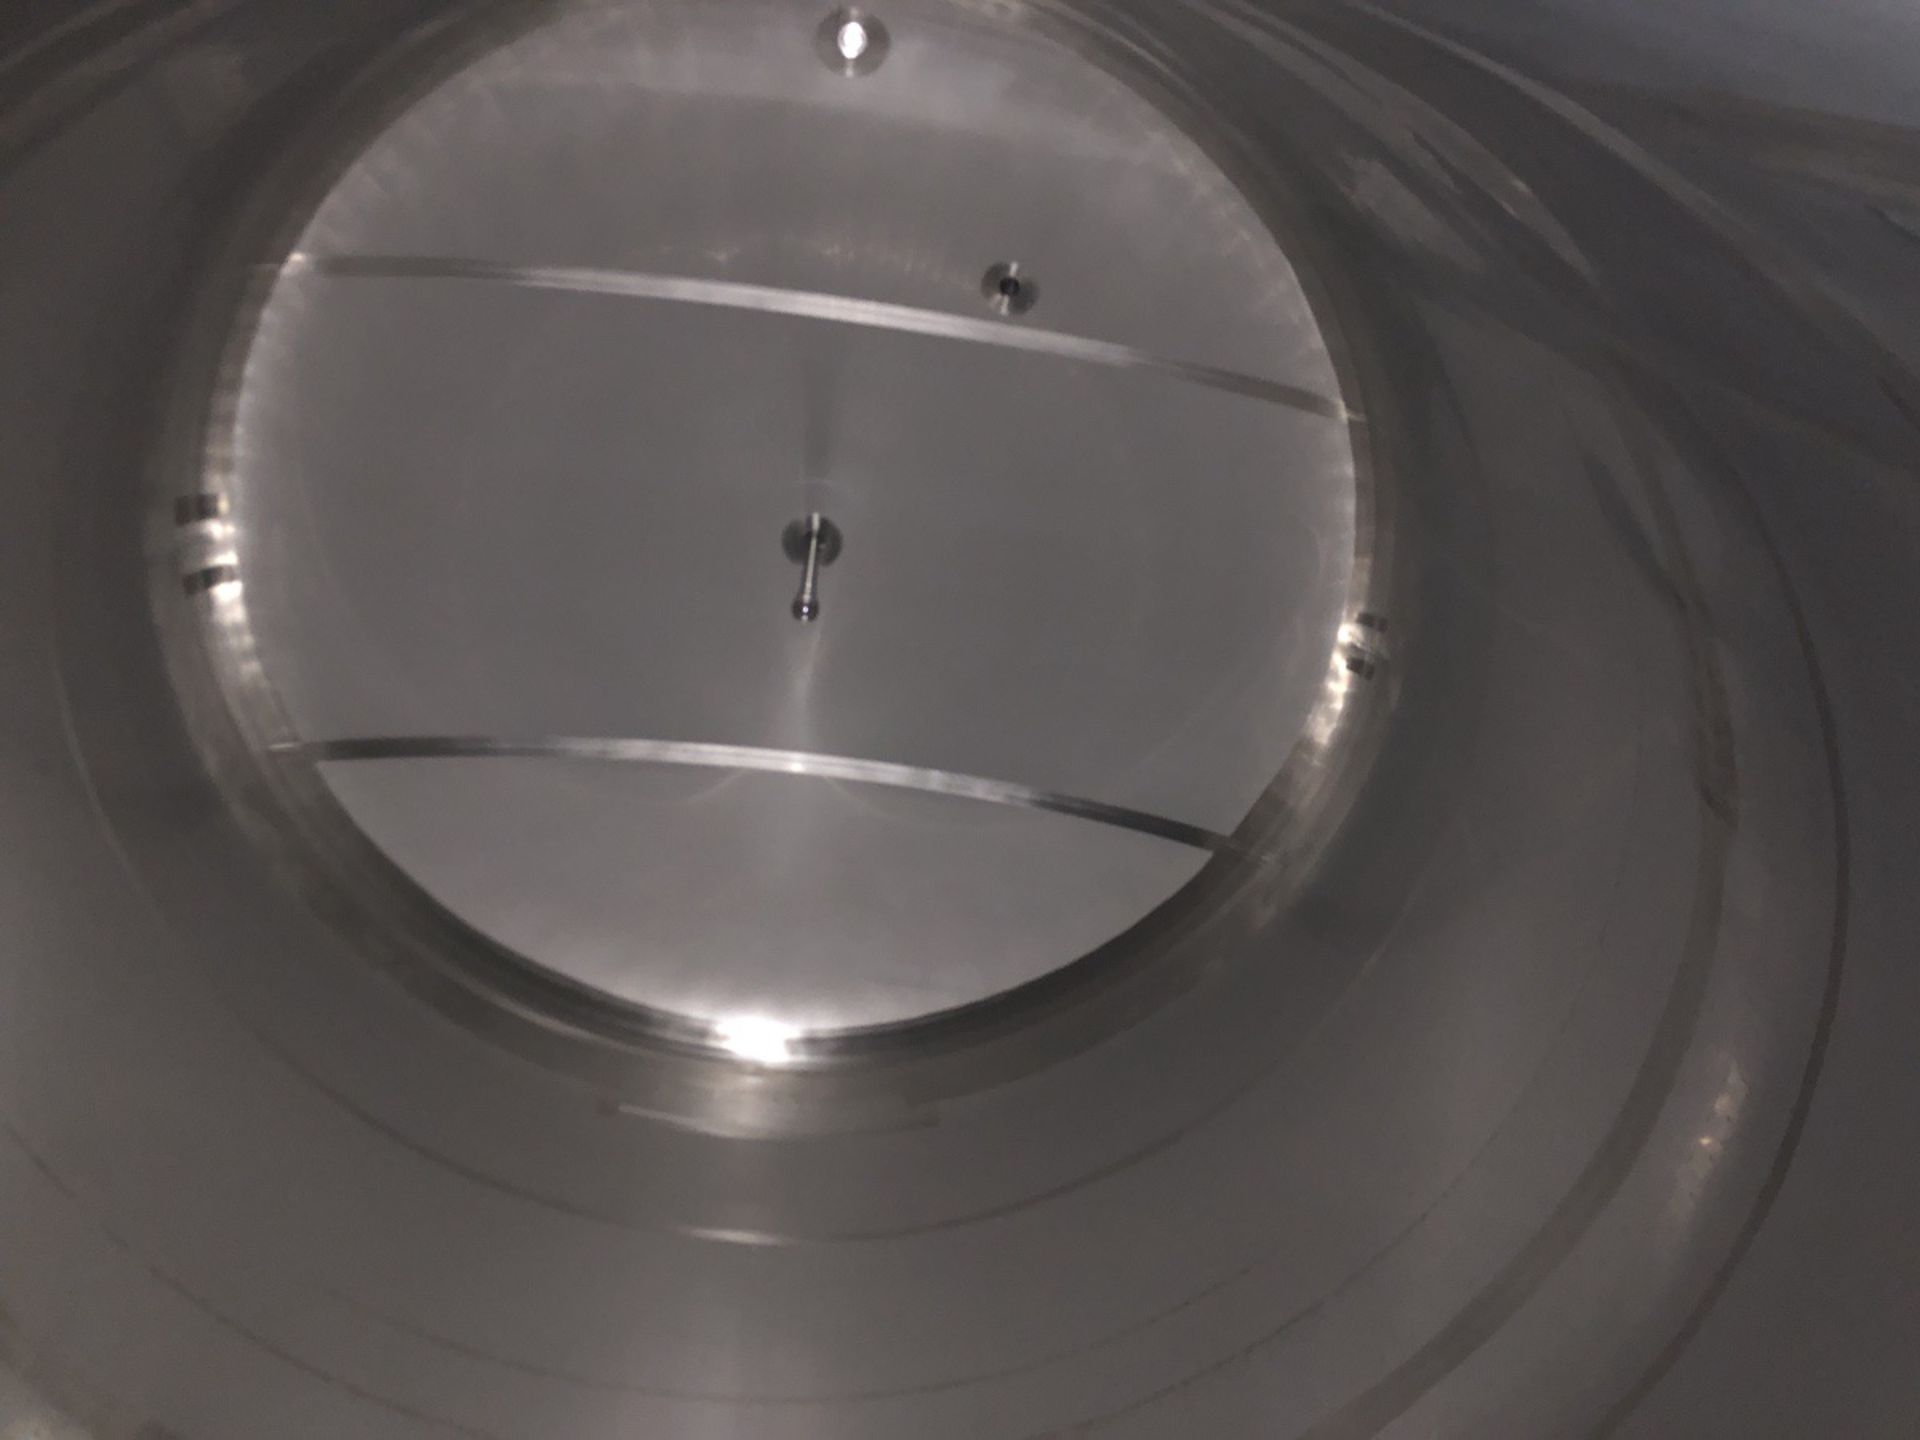 Lot 11 - JV Norhwest 200 BBL Fermenter, Cone Bottom, Glycol Jacketed, Stainless Steel, Appro | Rig Fee: $3300